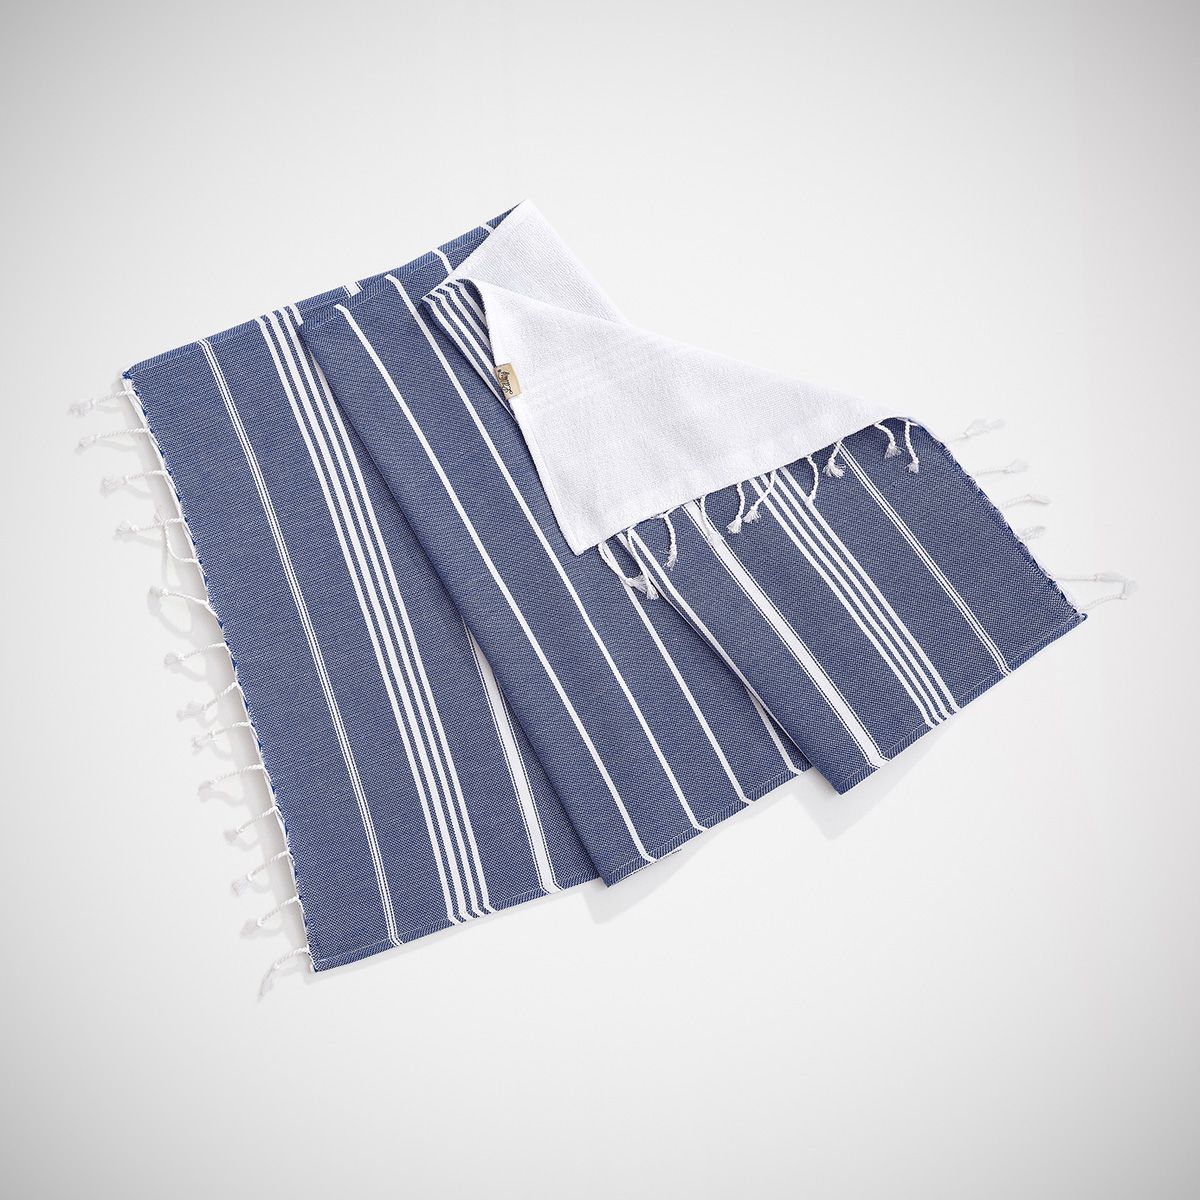 Peshtowel Mini Ani - Royal Blue